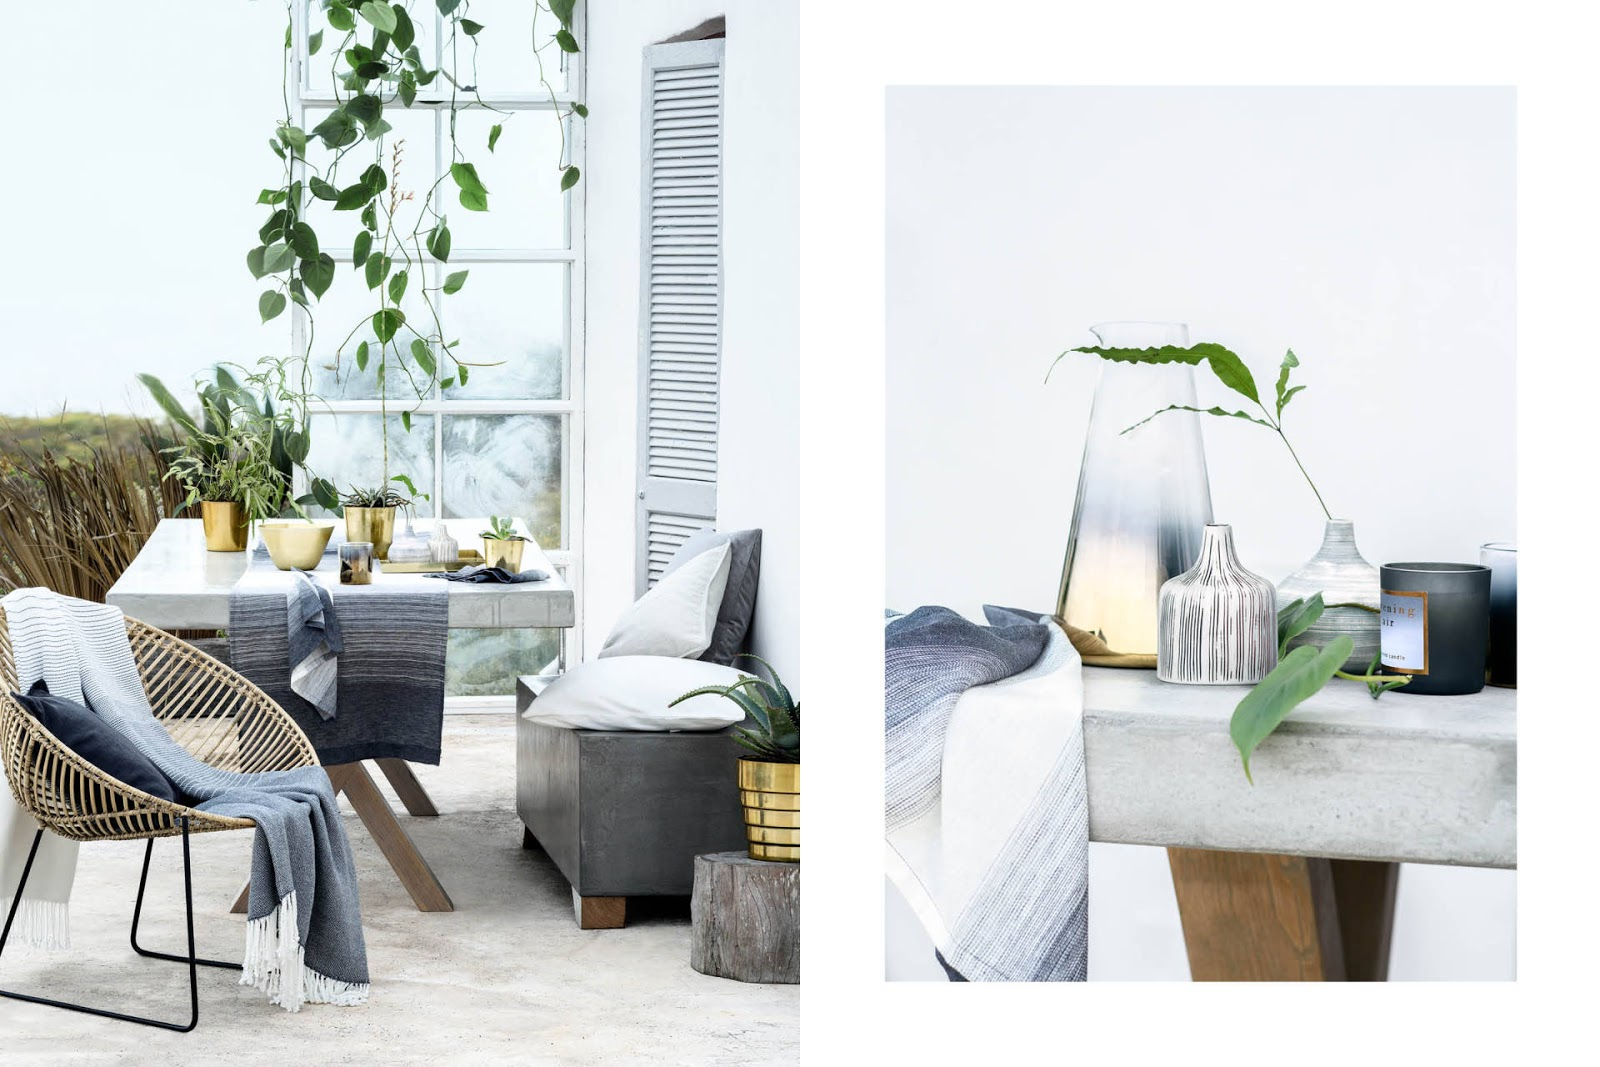 h&m home decorar jardín gris